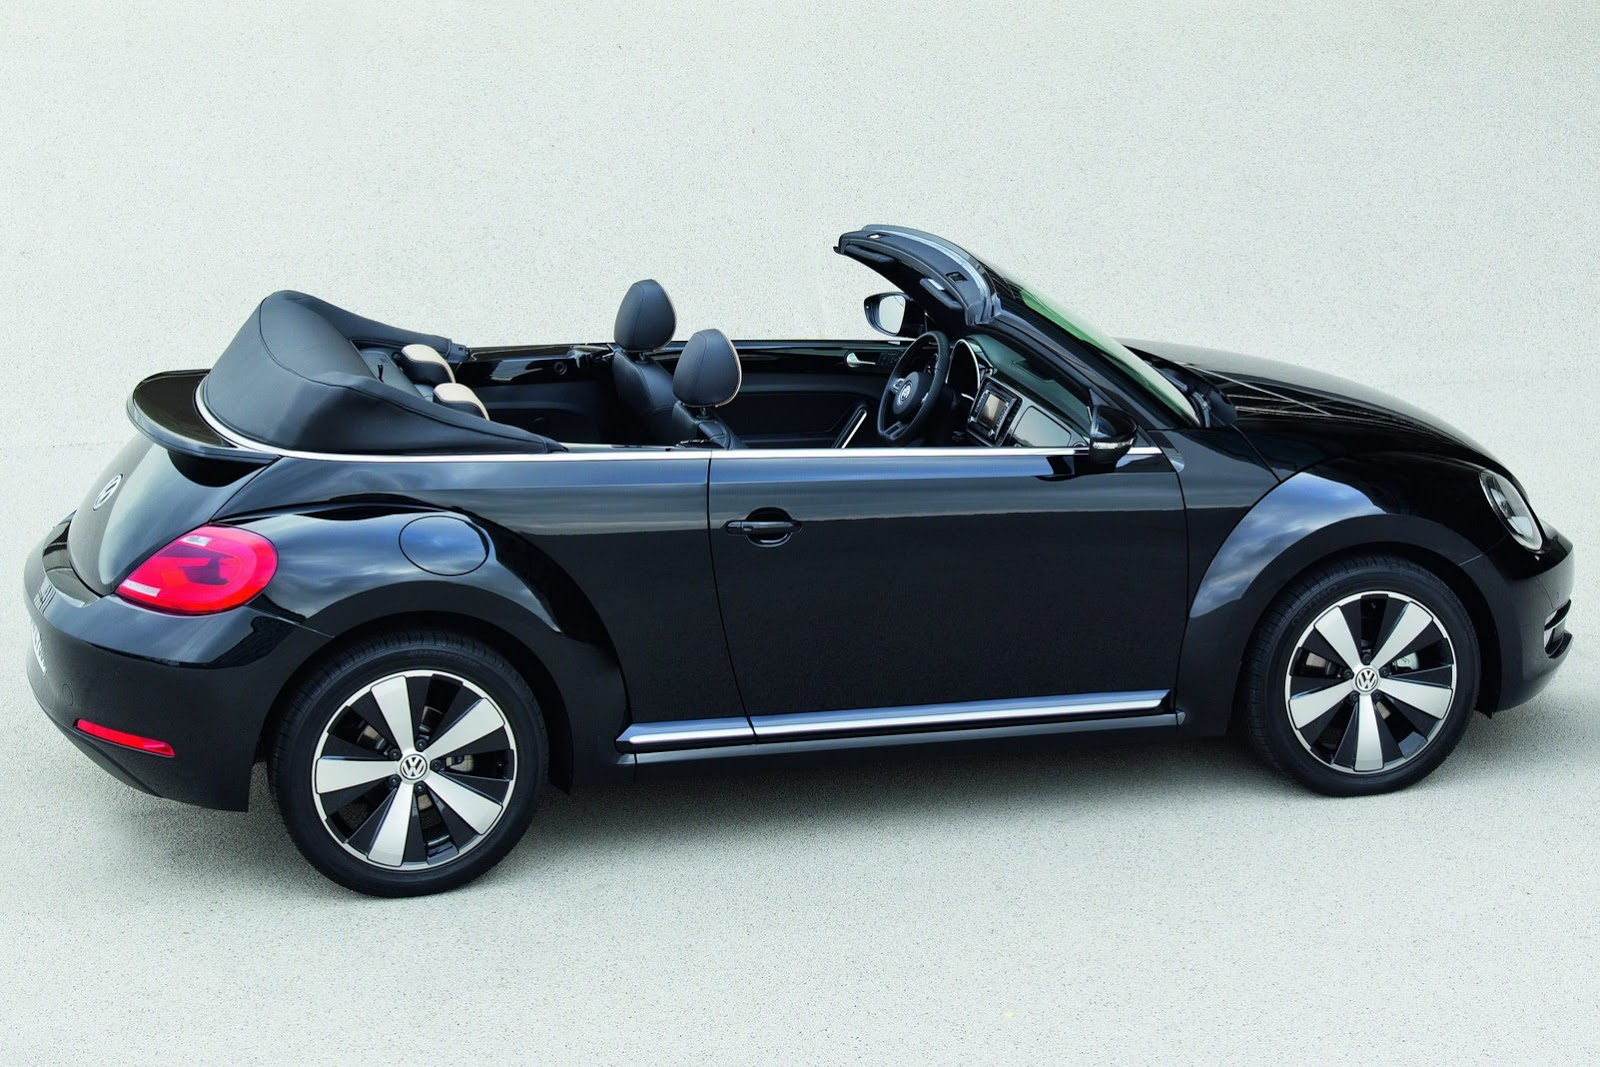 vw beetle coupe and cabriolet autooonline magazine. Black Bedroom Furniture Sets. Home Design Ideas